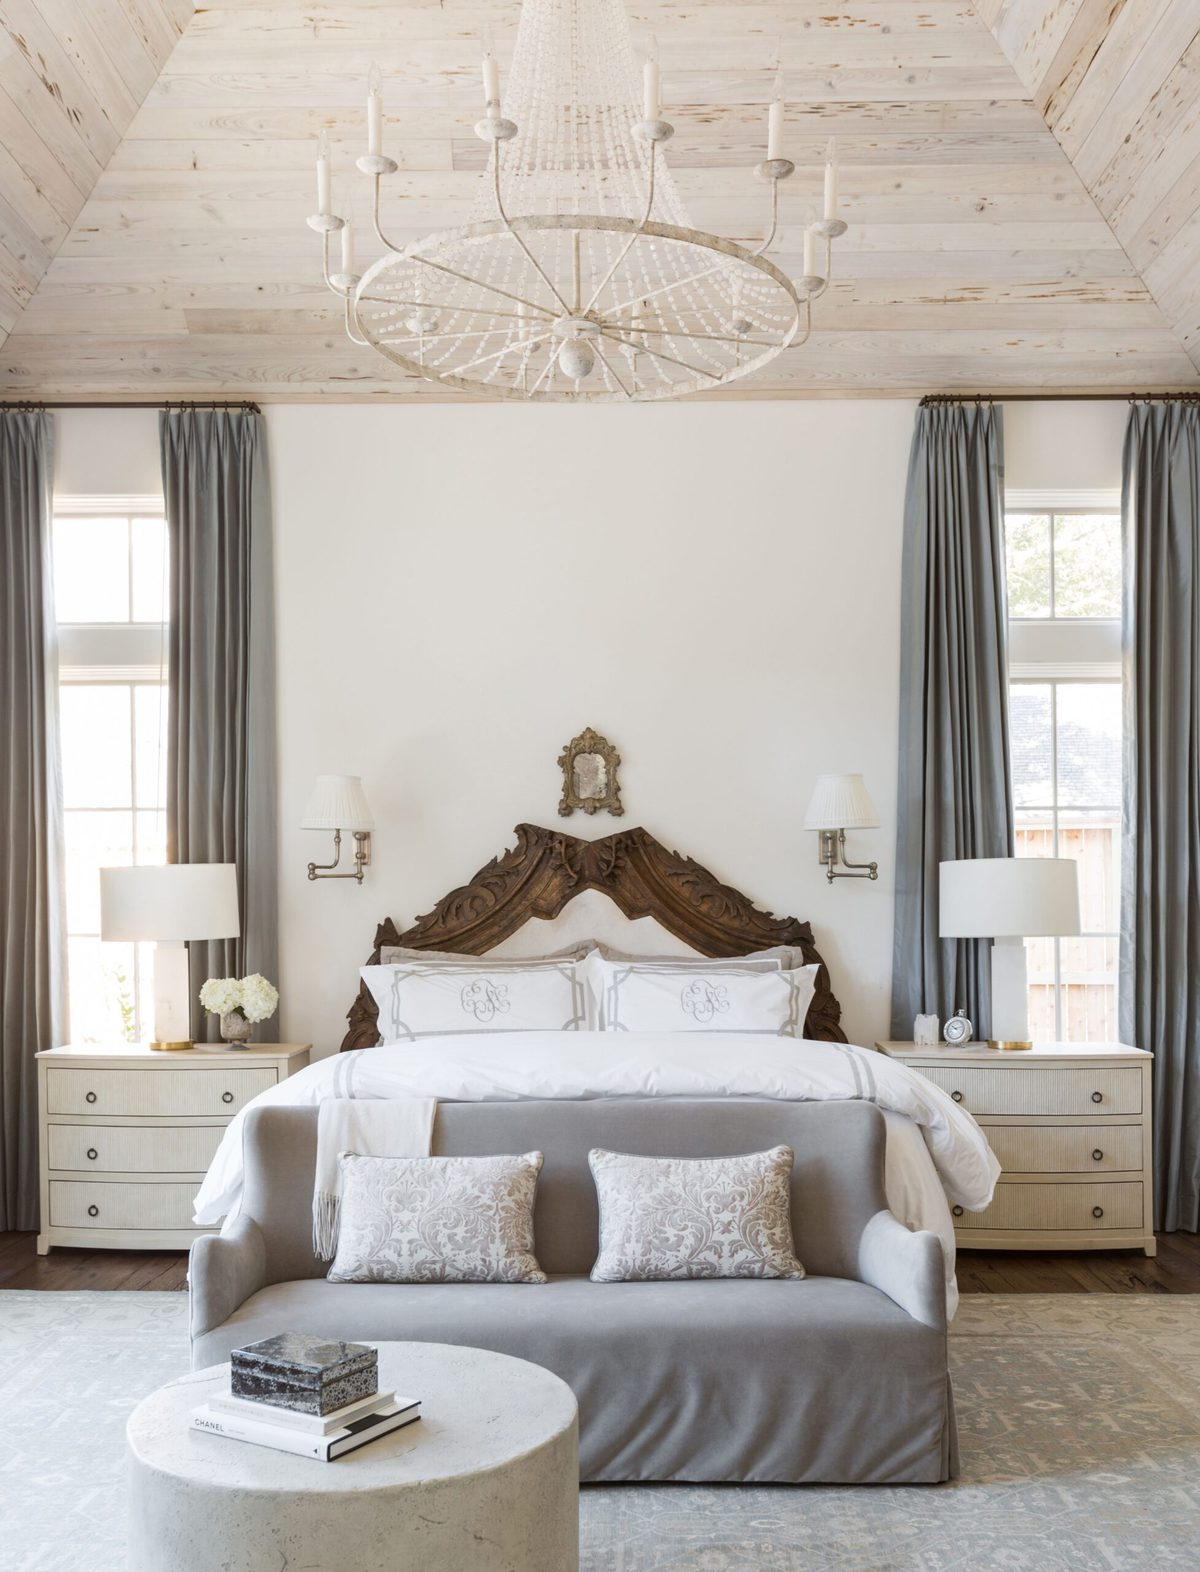 A European-inspired bedroom with walls painted cloudy white by Benjamin Moore